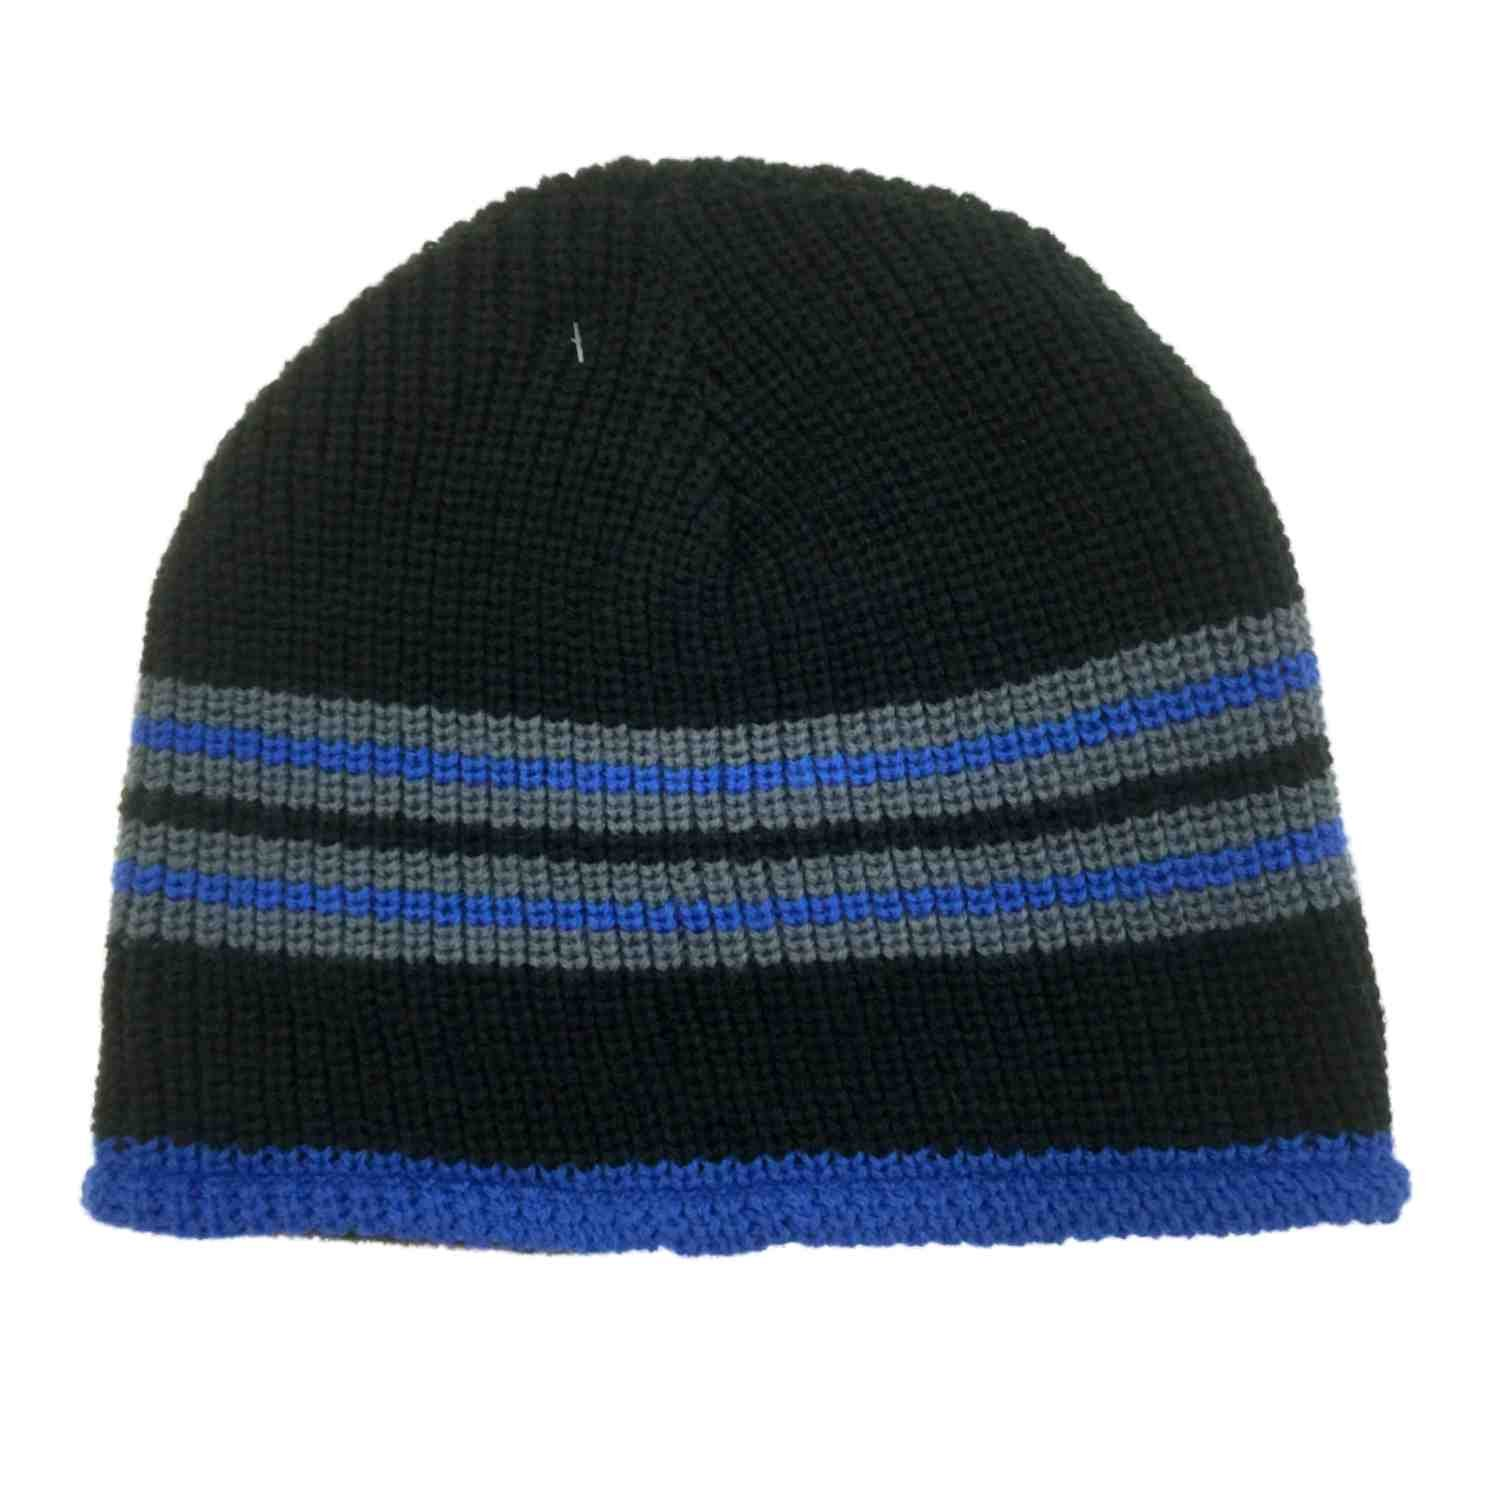 Ben Berger Boys Reversible Blue Black Knit Beanie Cammo Fleece Stocking Cap Hat